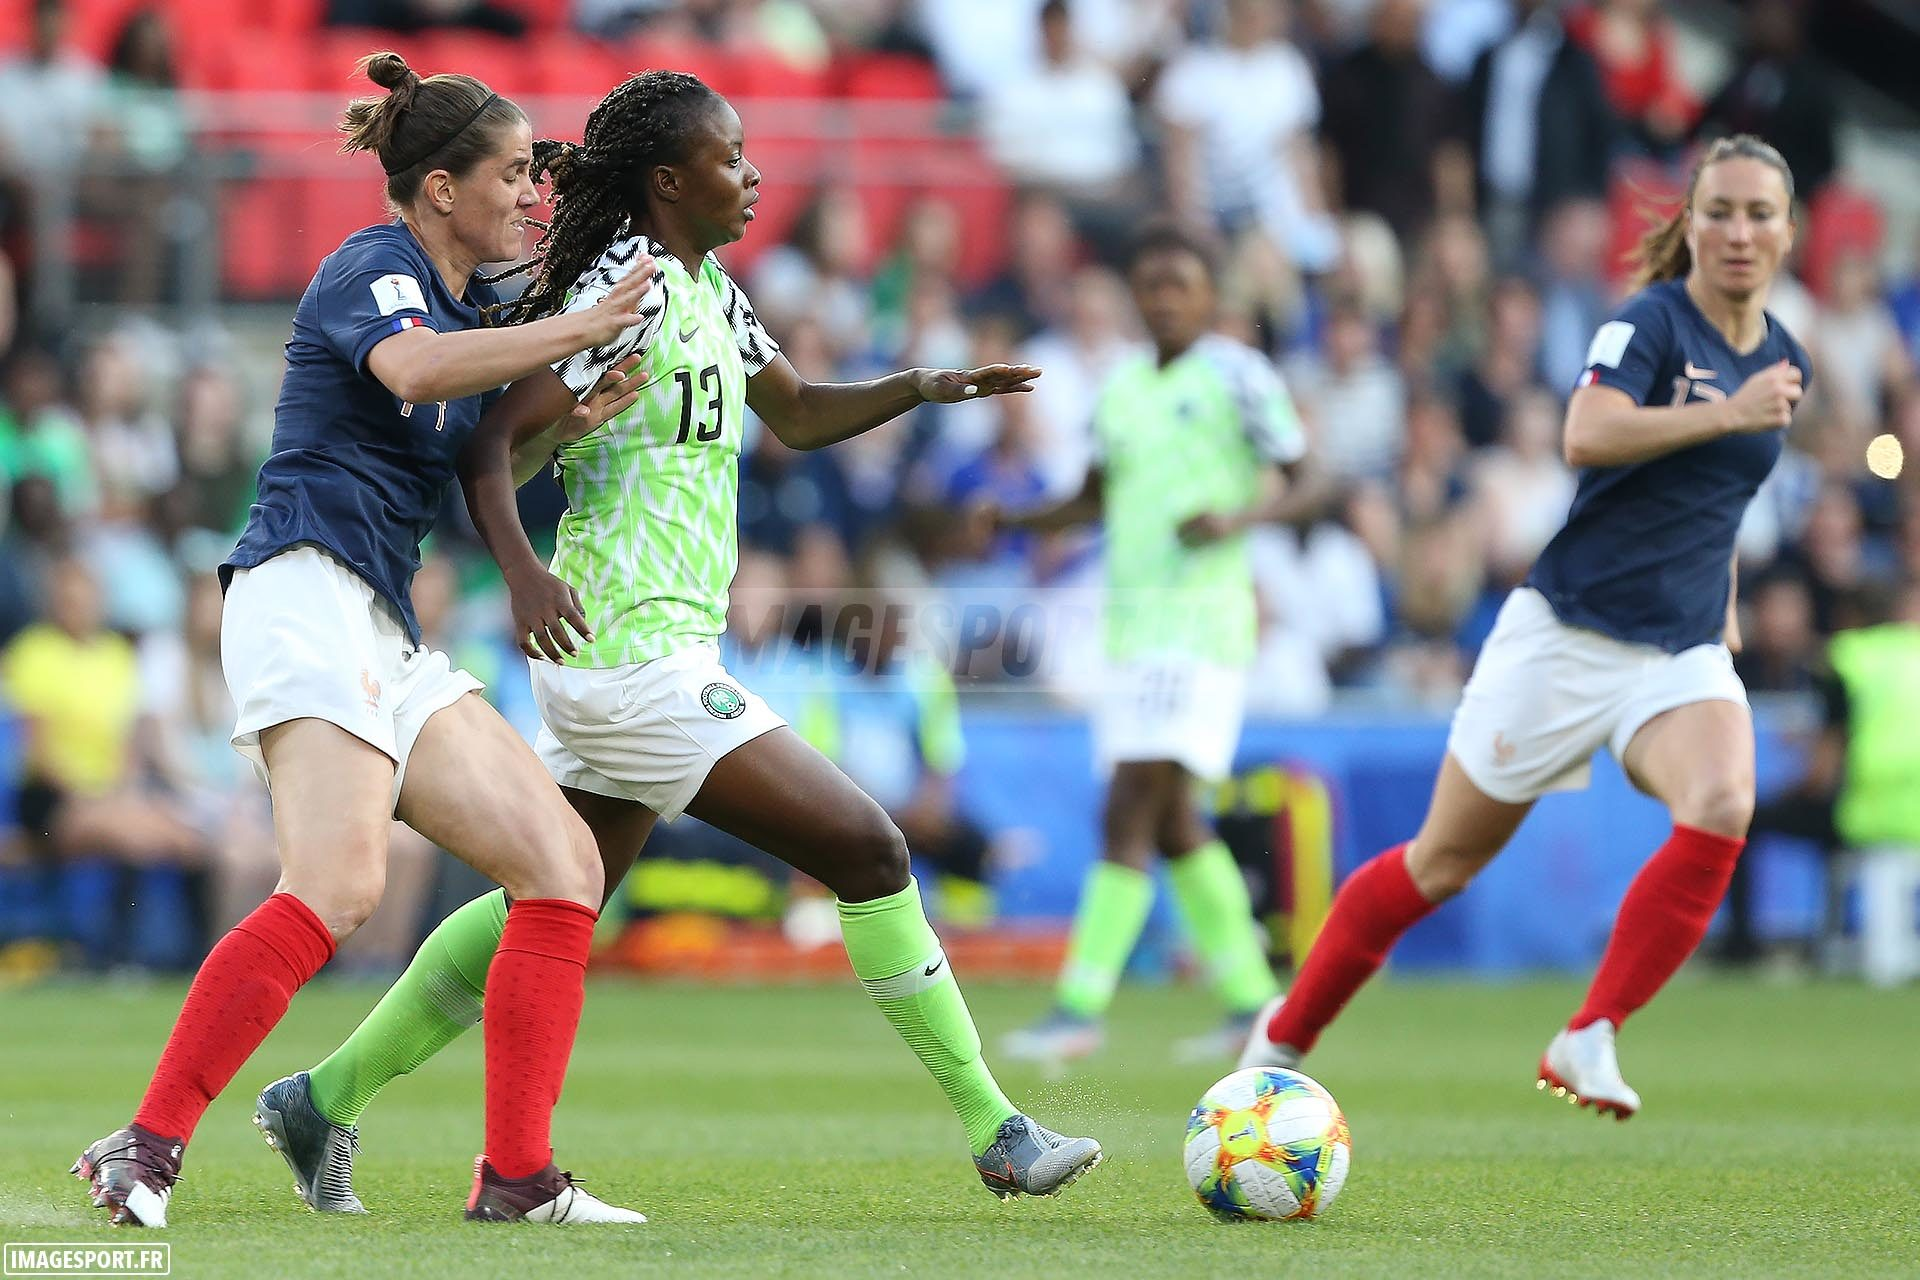 coupe-du-monde-19-nigeria-france_5